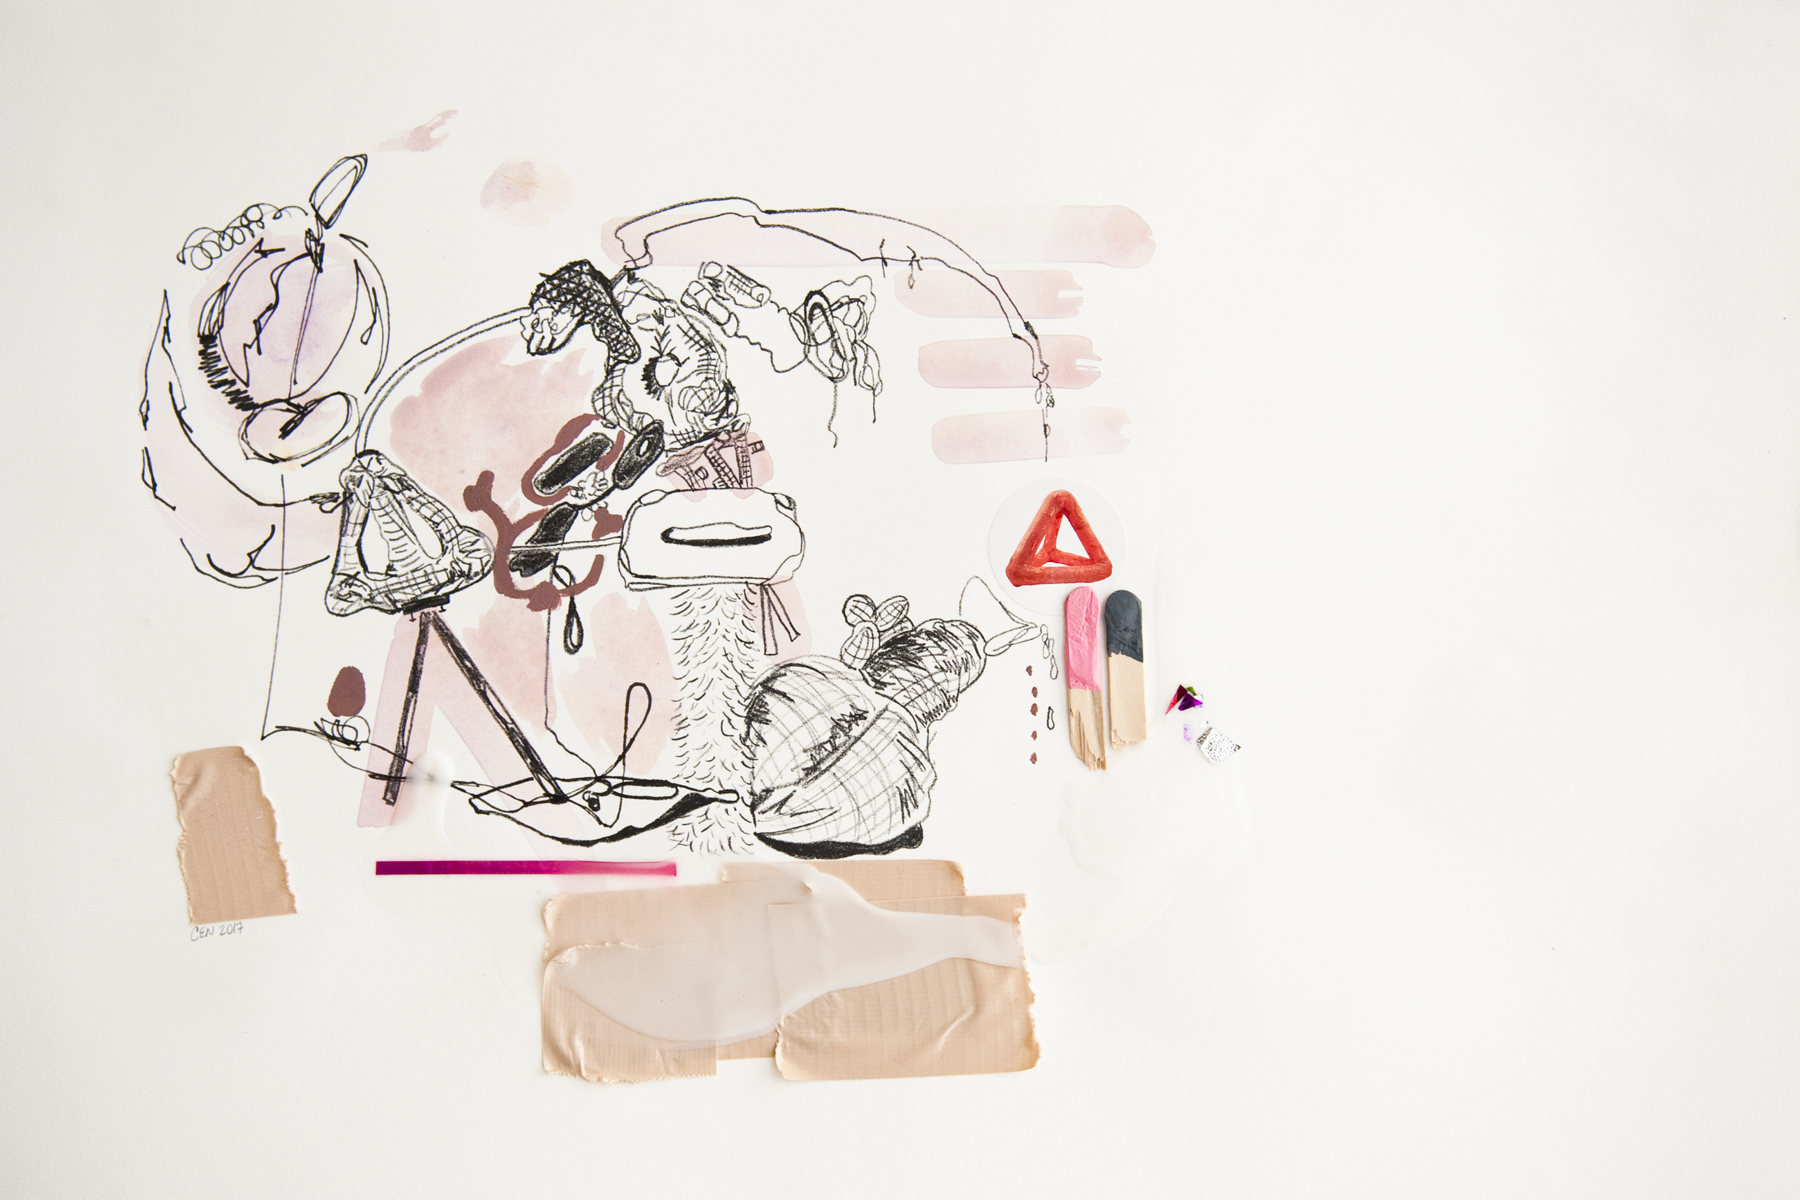 Tina and Murphey Daydream: Two, lithograph, graphite, watercolor, duct tape, glue, wood, vinyl on paper, 13.75 x 19.75 in, 2017